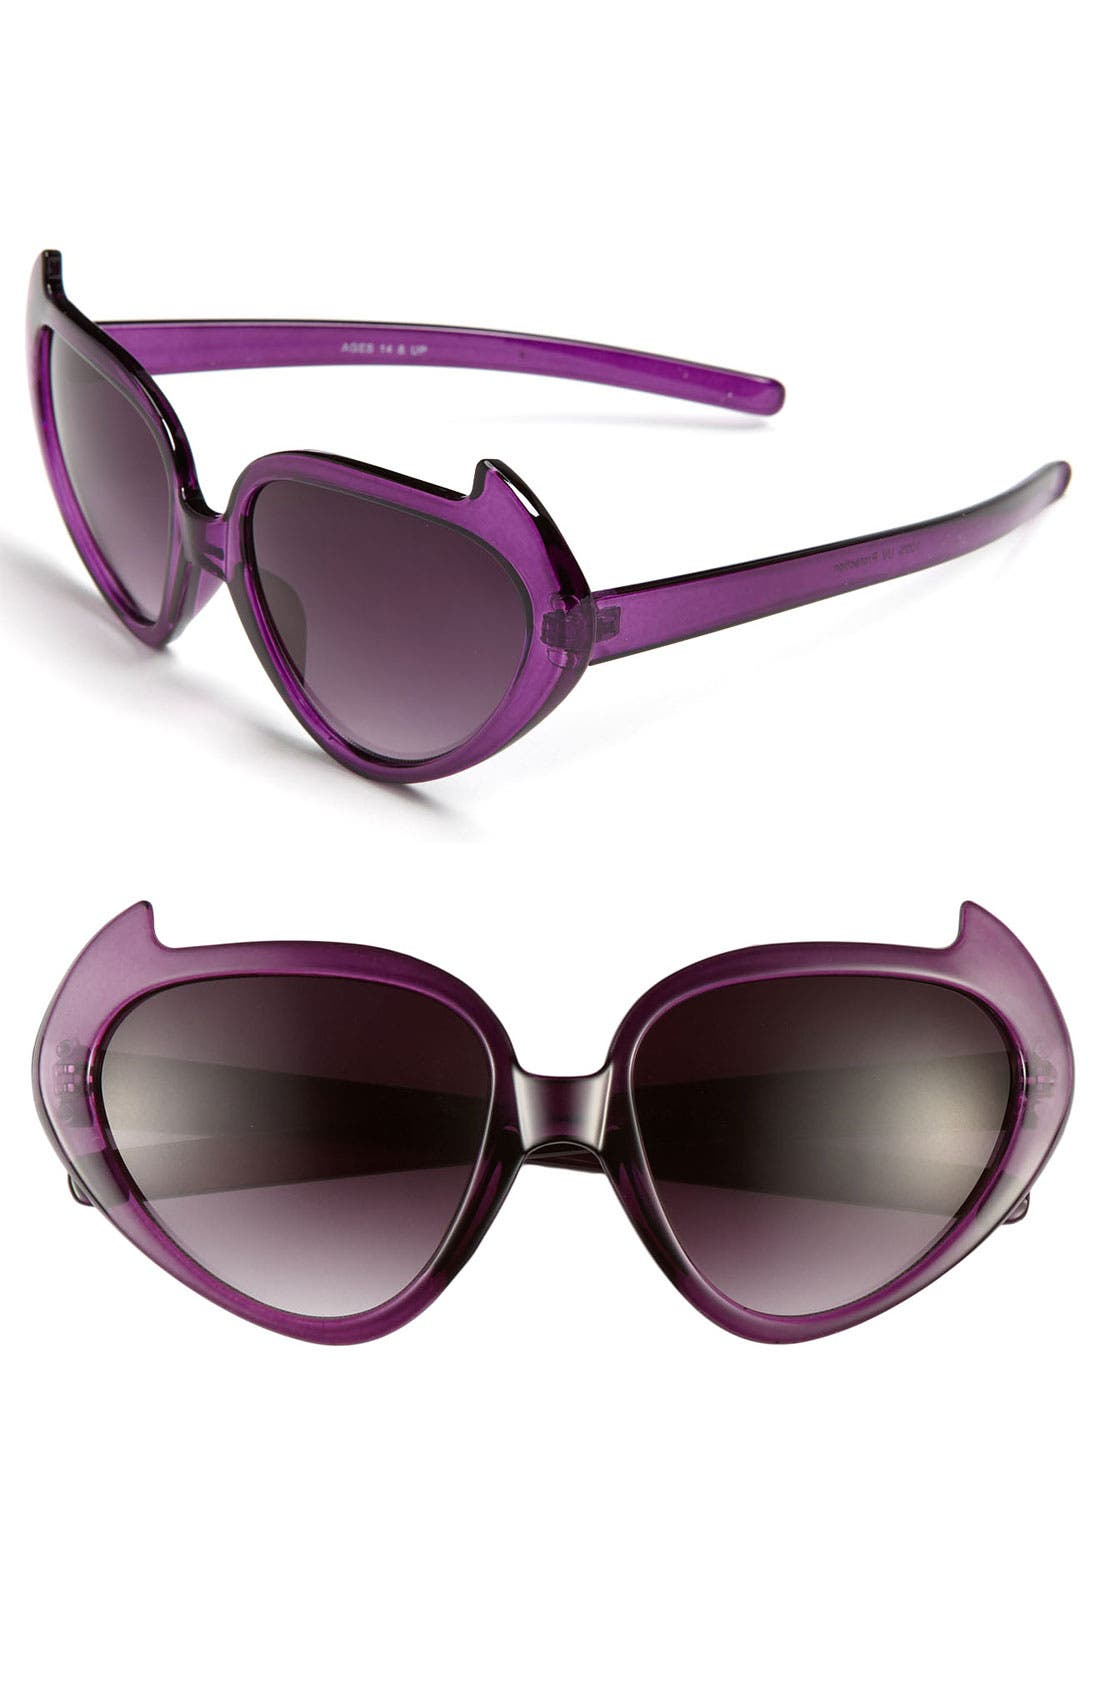 Alternate Image 1 Selected - FE NY 'Kitty' Cat's Eye Sunglasses